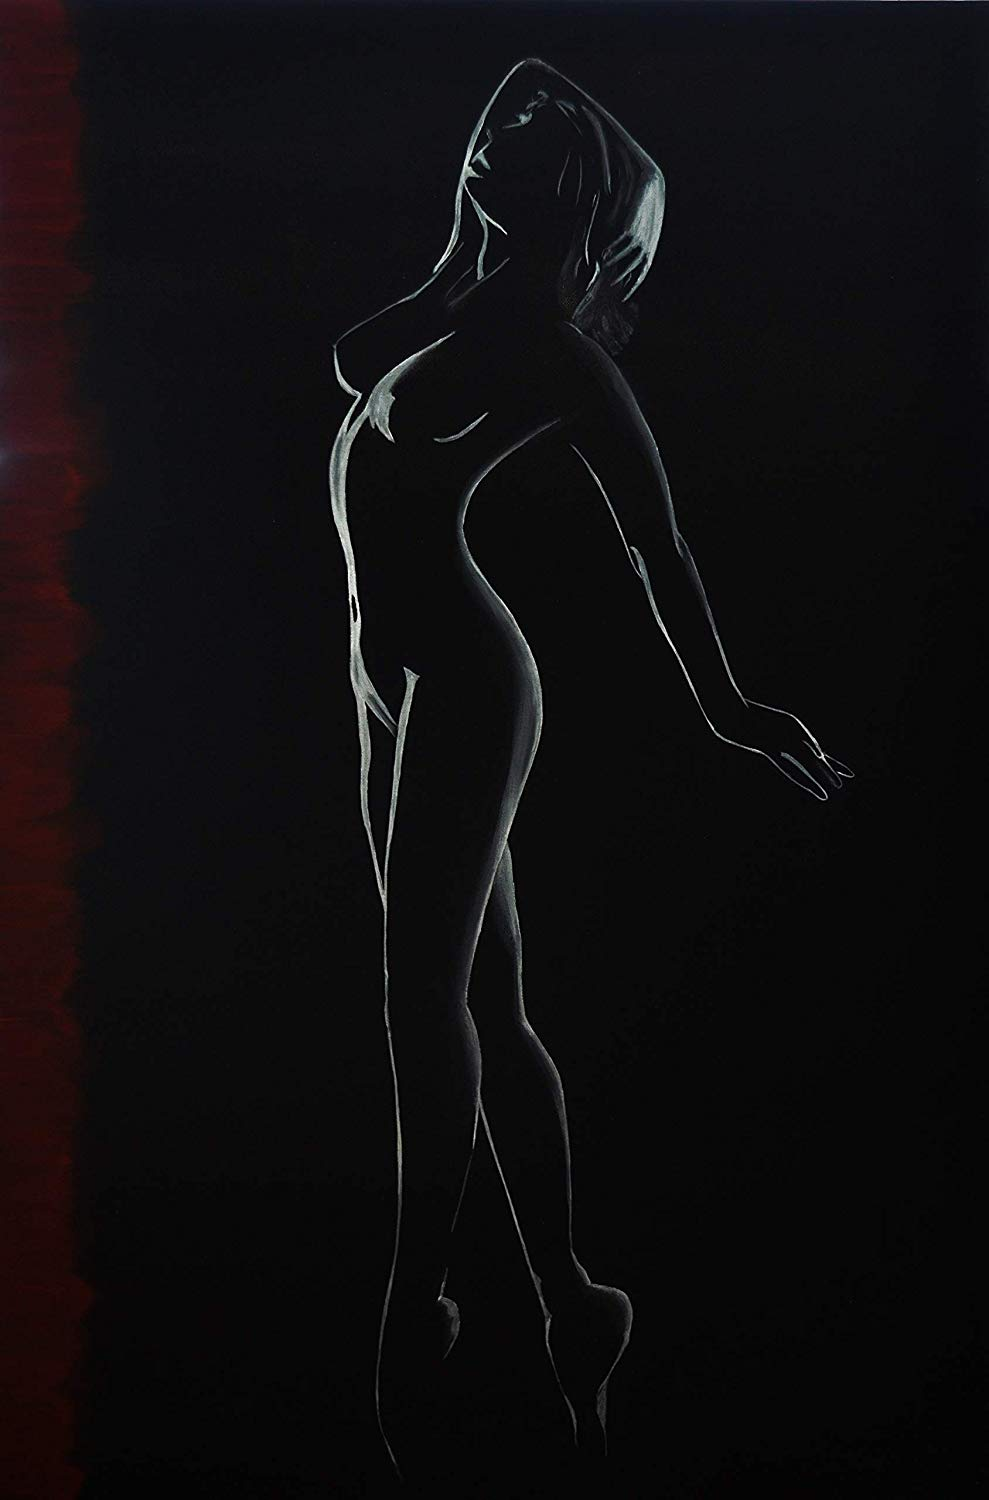 "Title: Essence of beauty, 24""W x 36""H, Original Handmade Artwork, Great gift idea, Certificate of authenticity included"